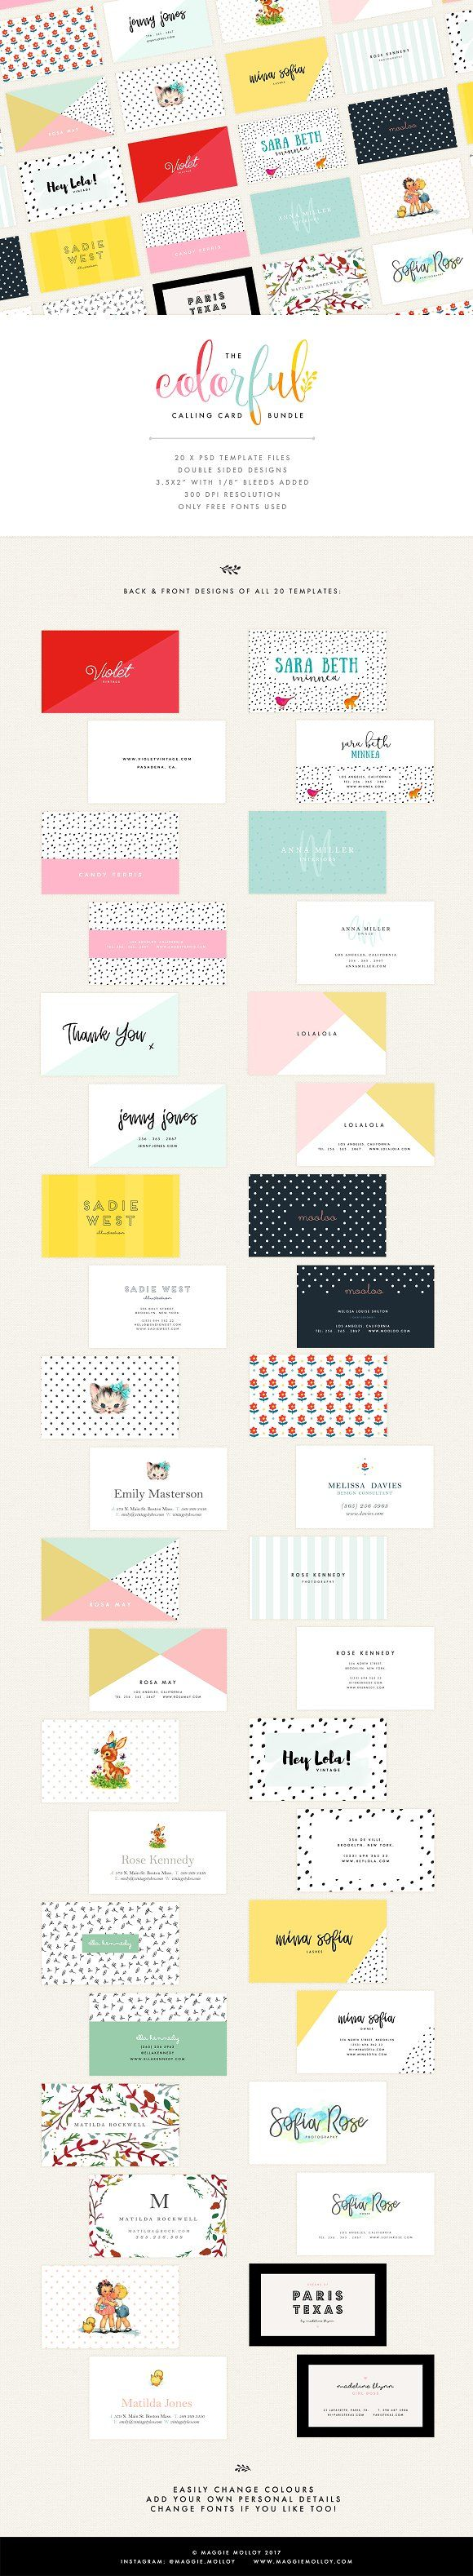 20 Colorful Business Card Templates | Card templates, Business cards ...